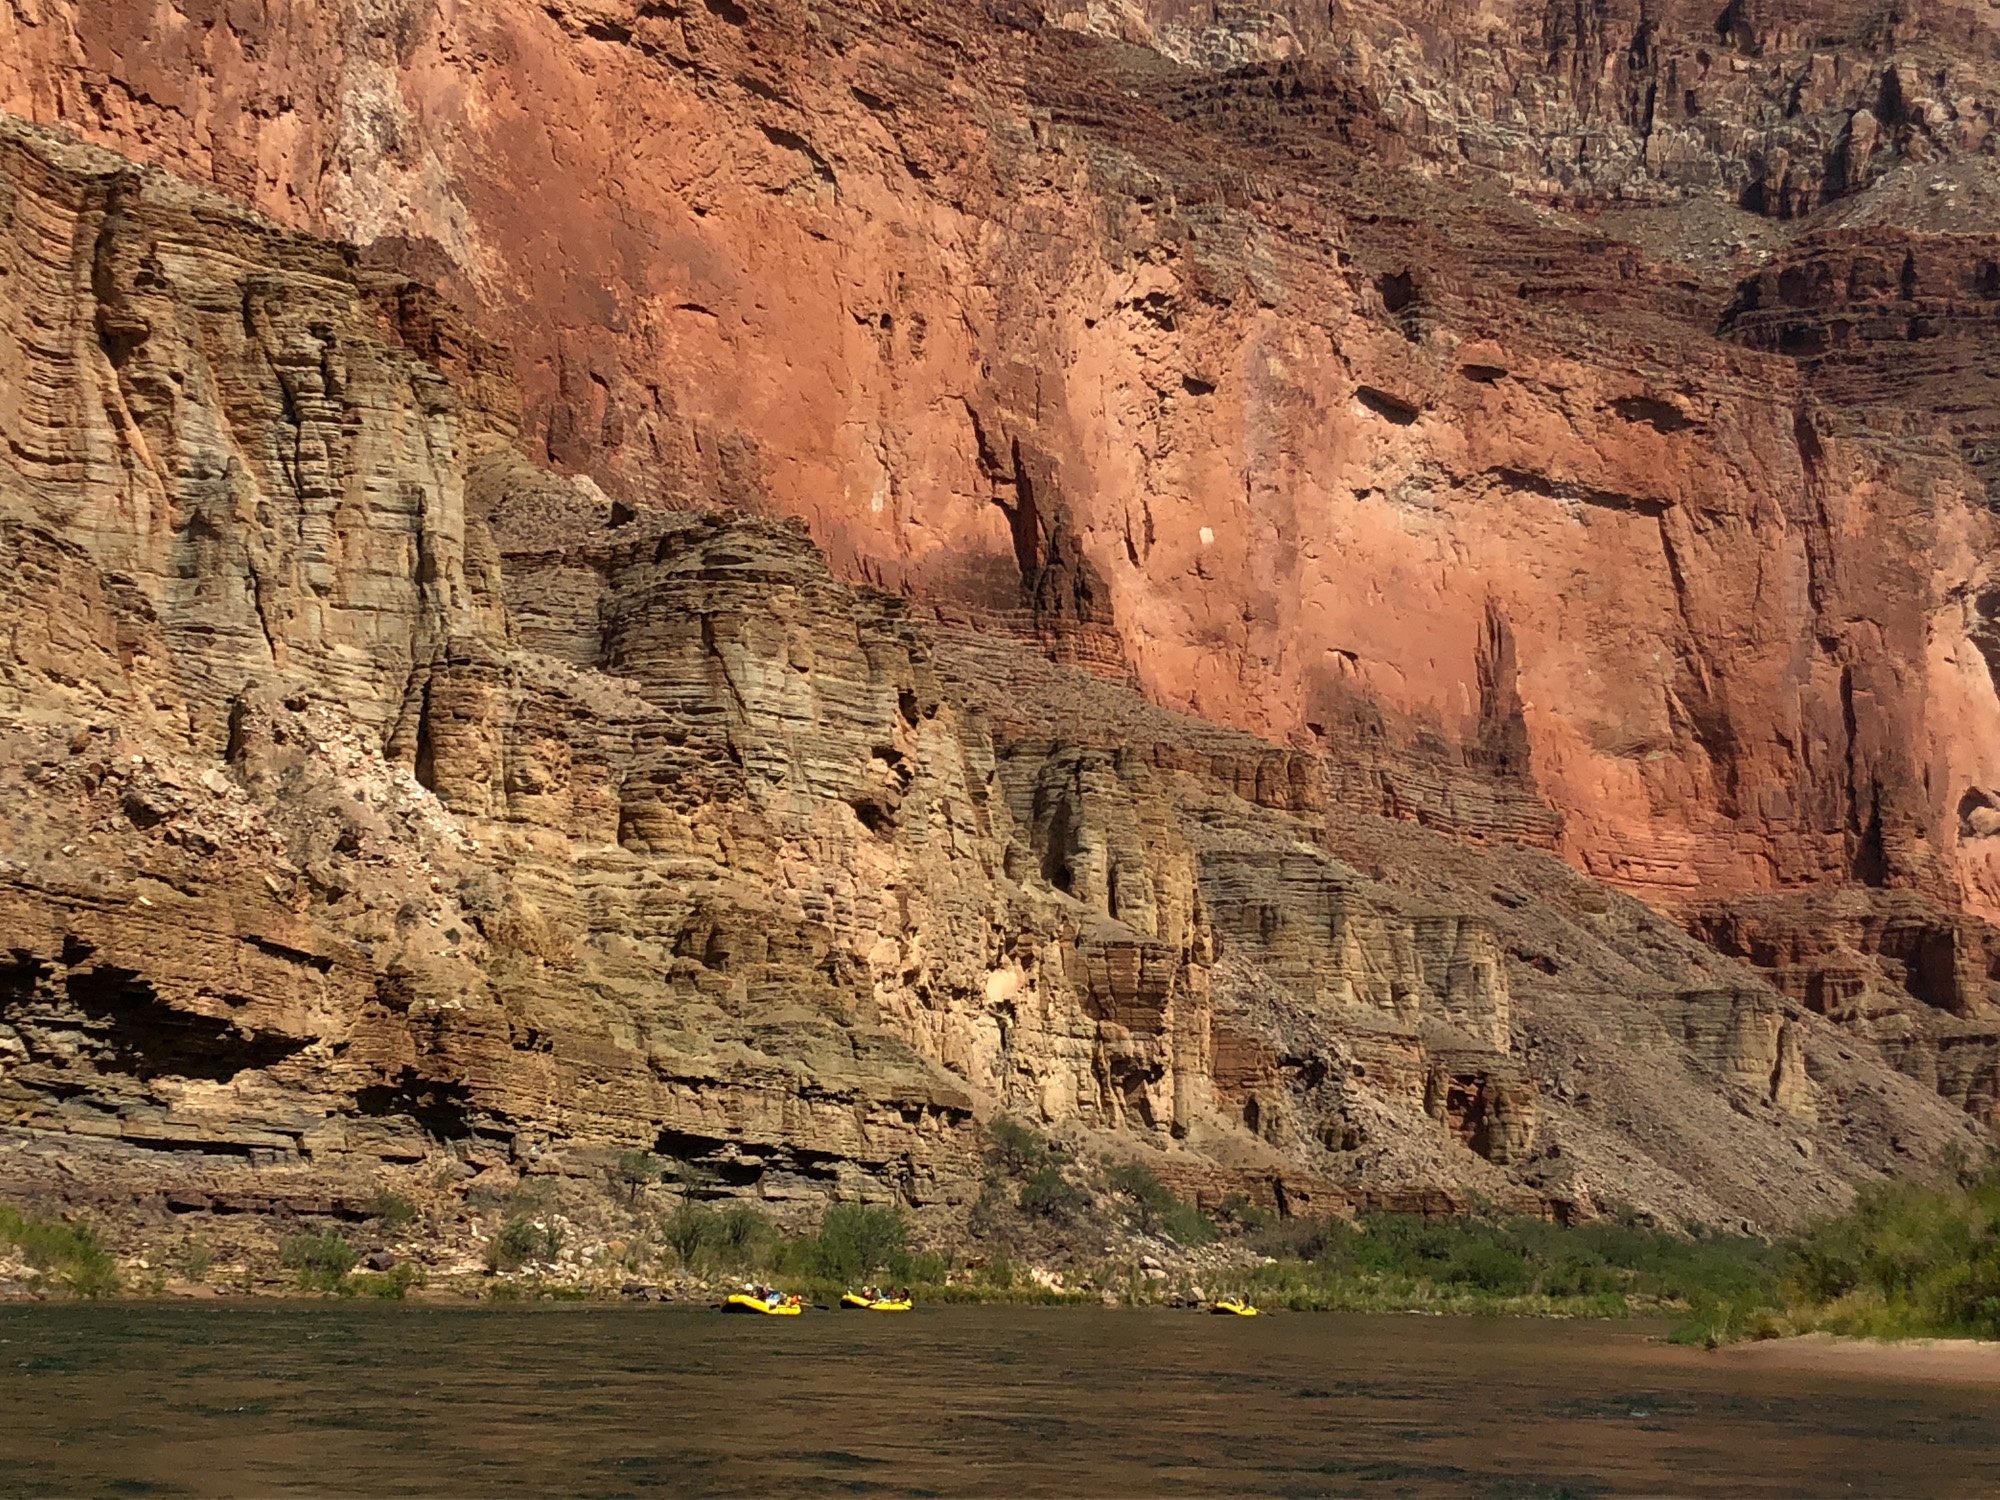 Small rafts inside a Grand Canyon